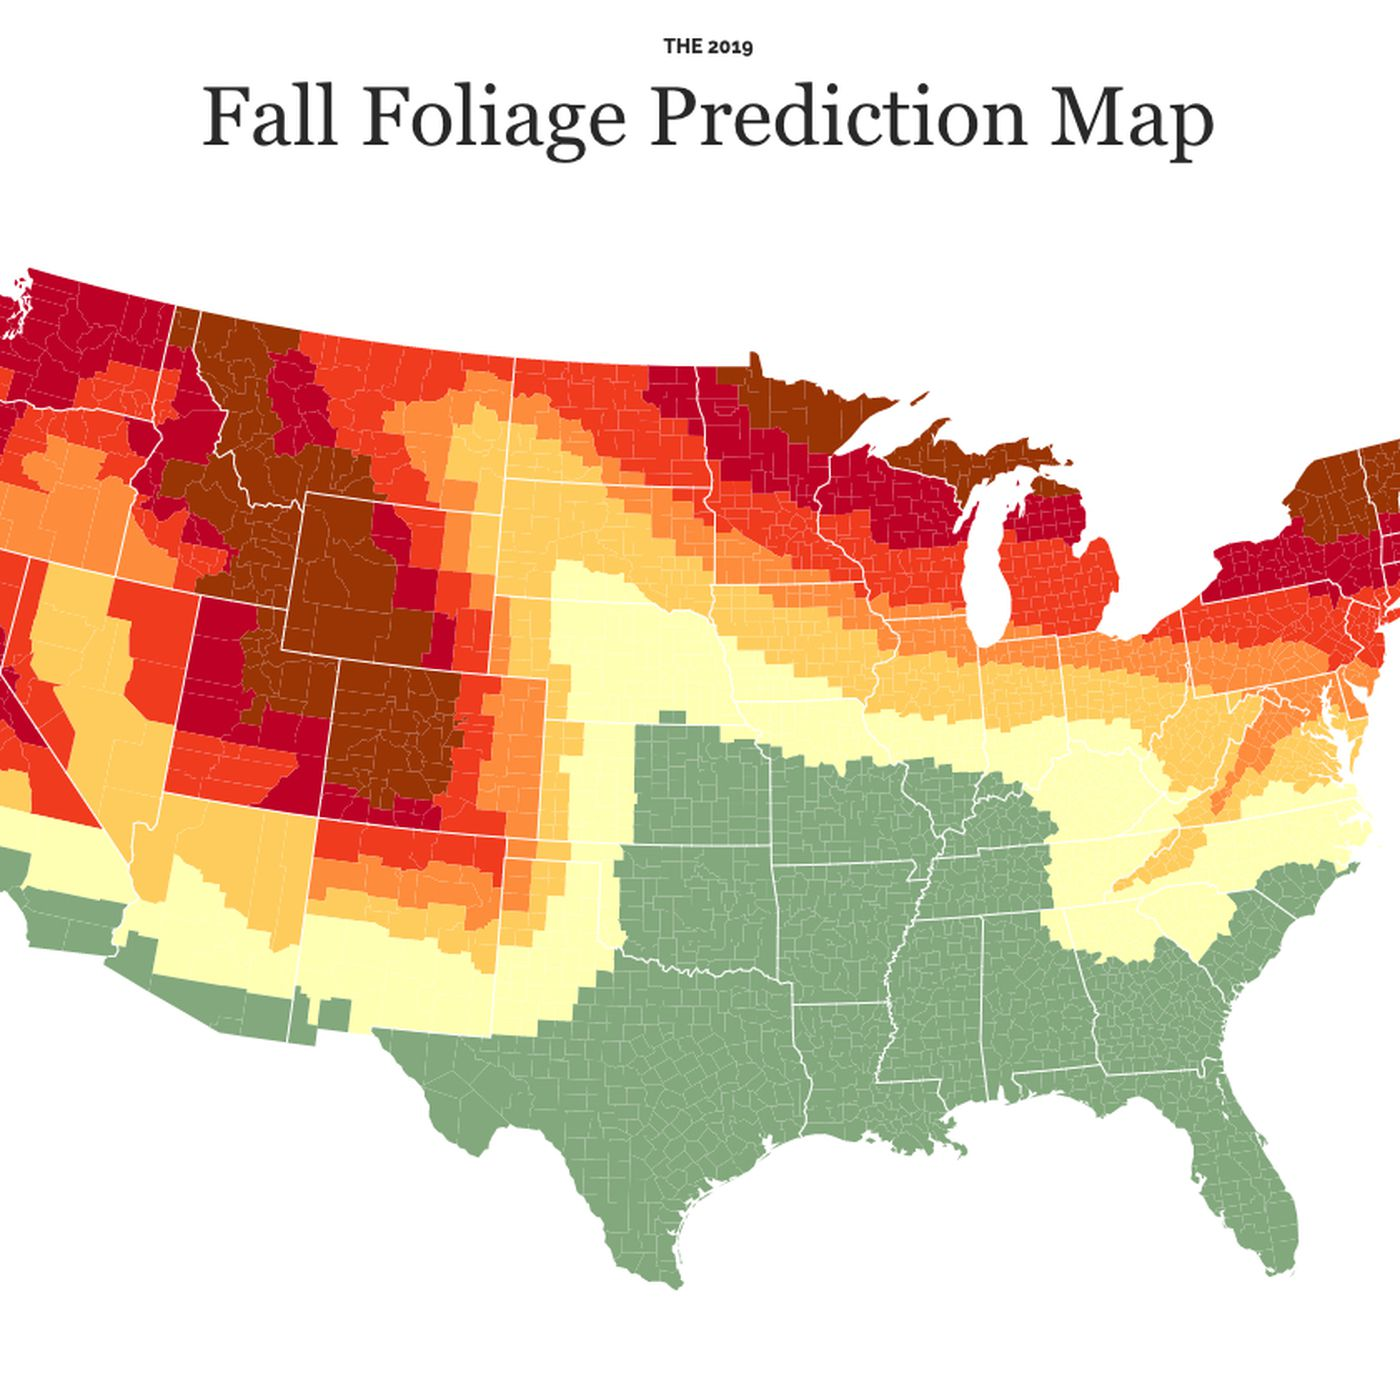 Peak Fall Foliage 2020 New York.Fall Colors 2019 Map When And Where Autumn Foliage Will